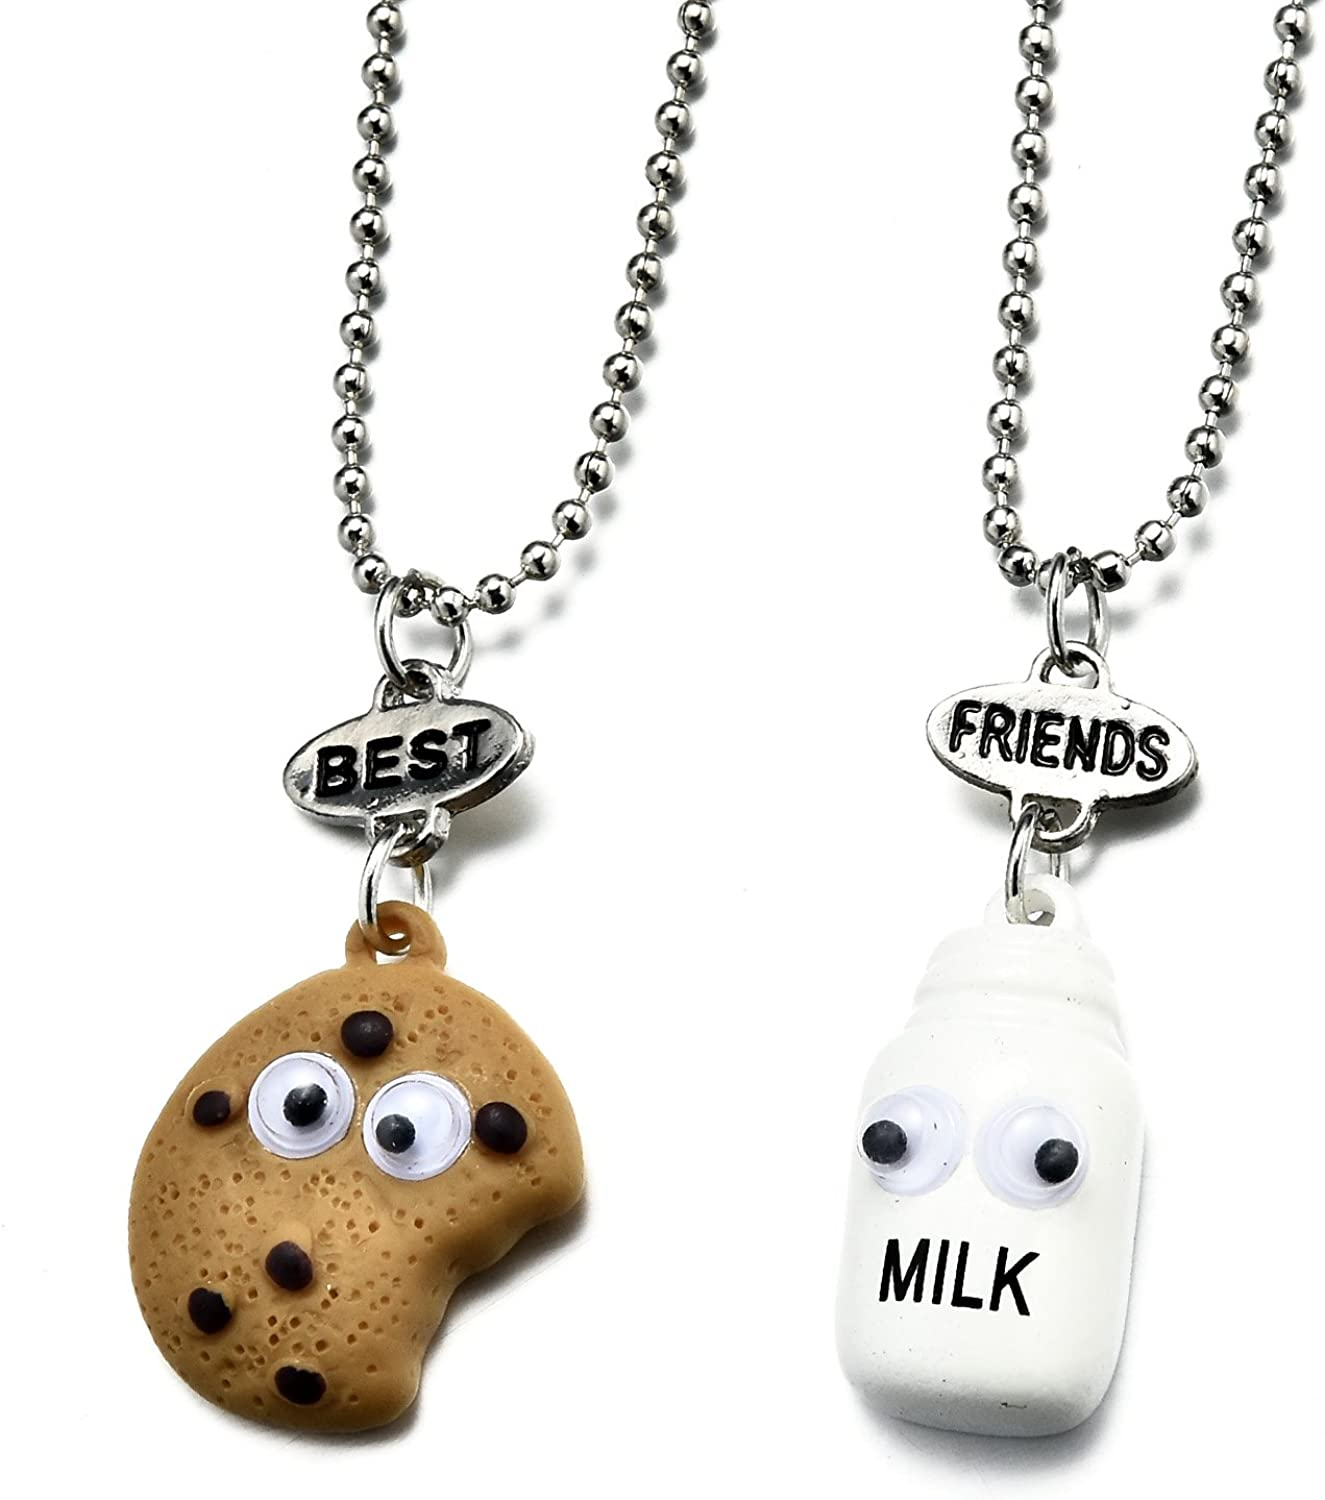 2/3/4 Packs BFF Best Friends Forever Tags Kids Pendant Necklace Set